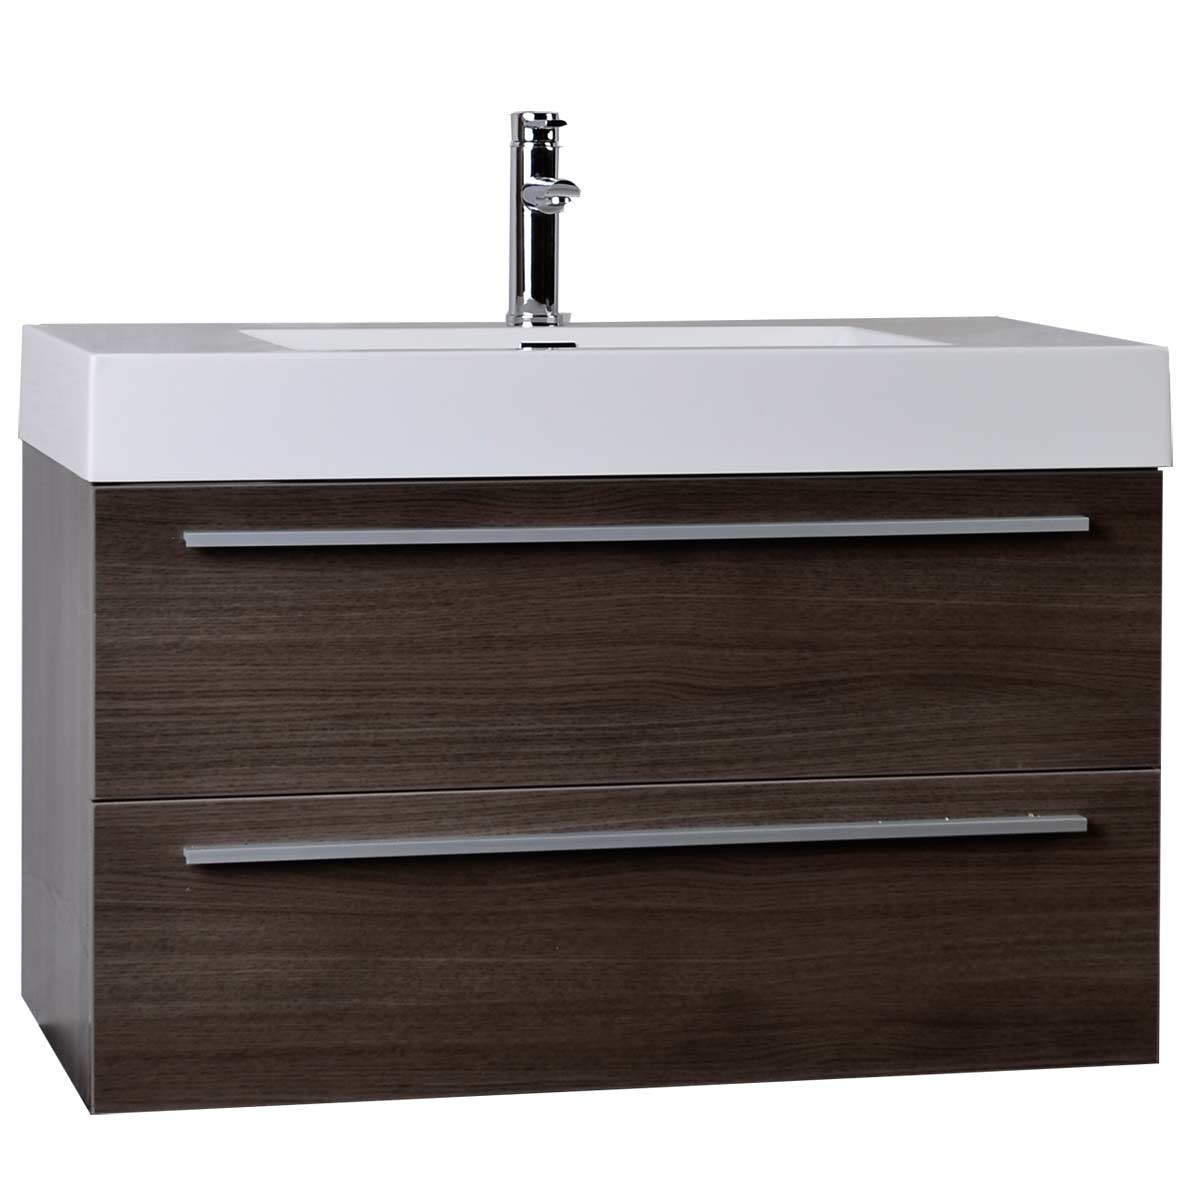 35 5 modern bathroom vanity grey oak wall mount free for Bathroom wall vanity cabinets